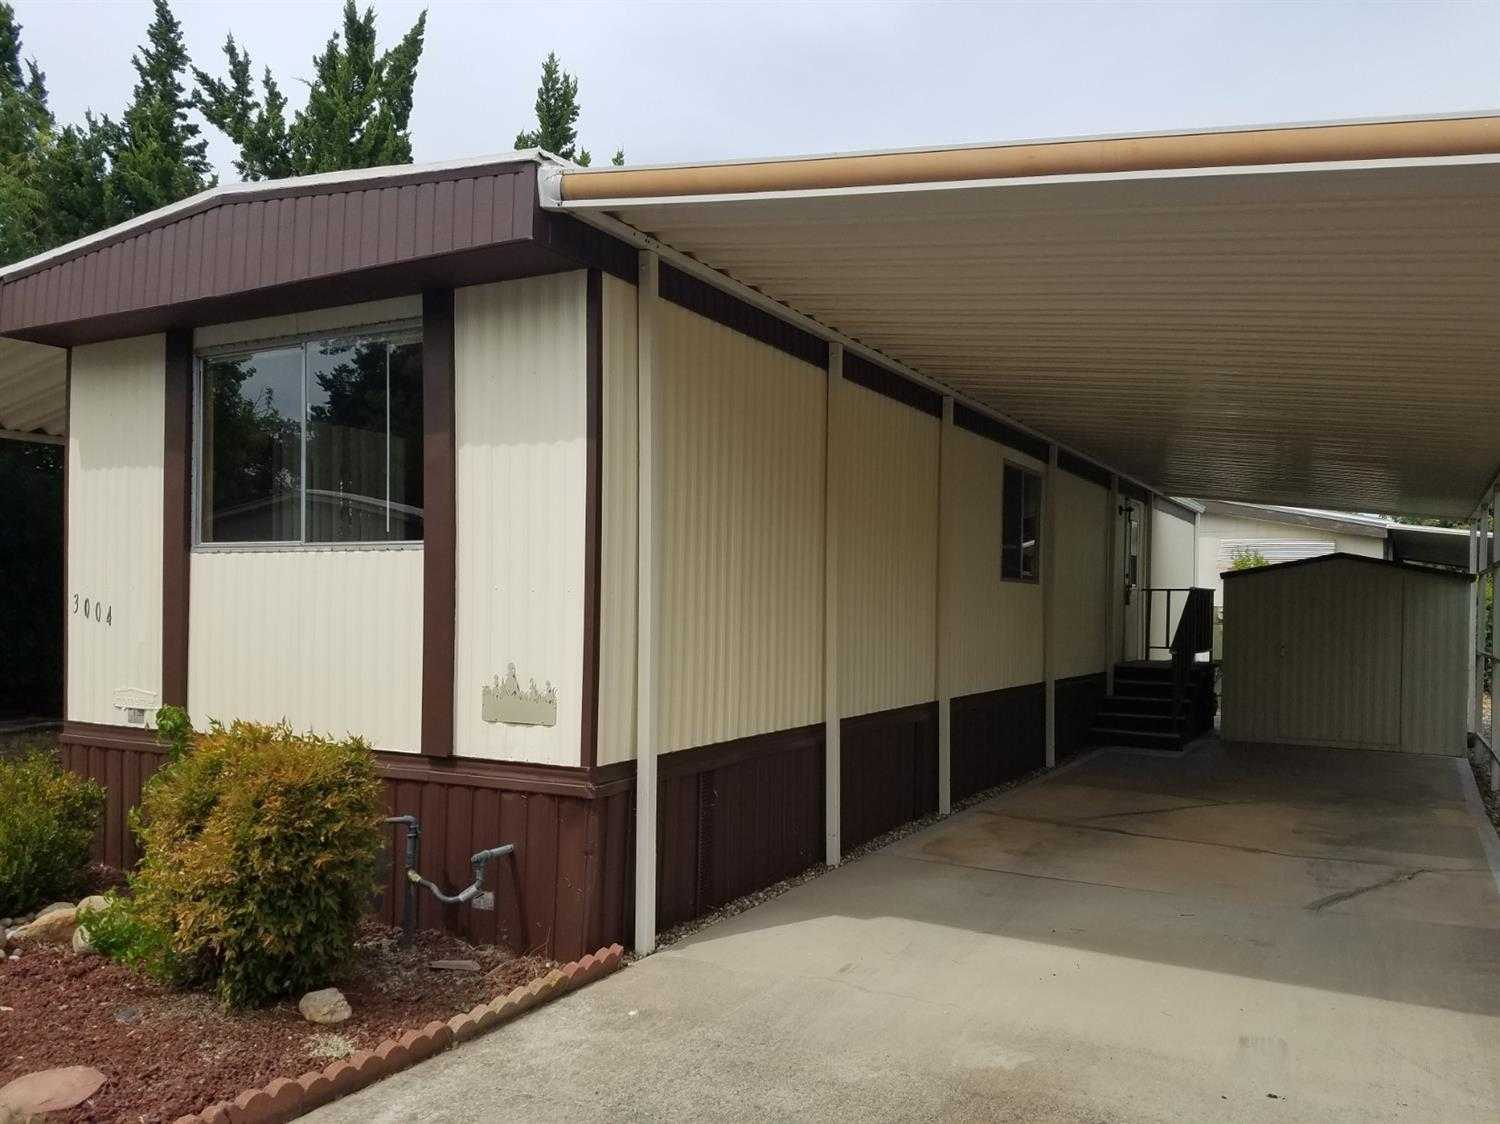 $14,500 - 1Br/1Ba -  for Sale in Anderson